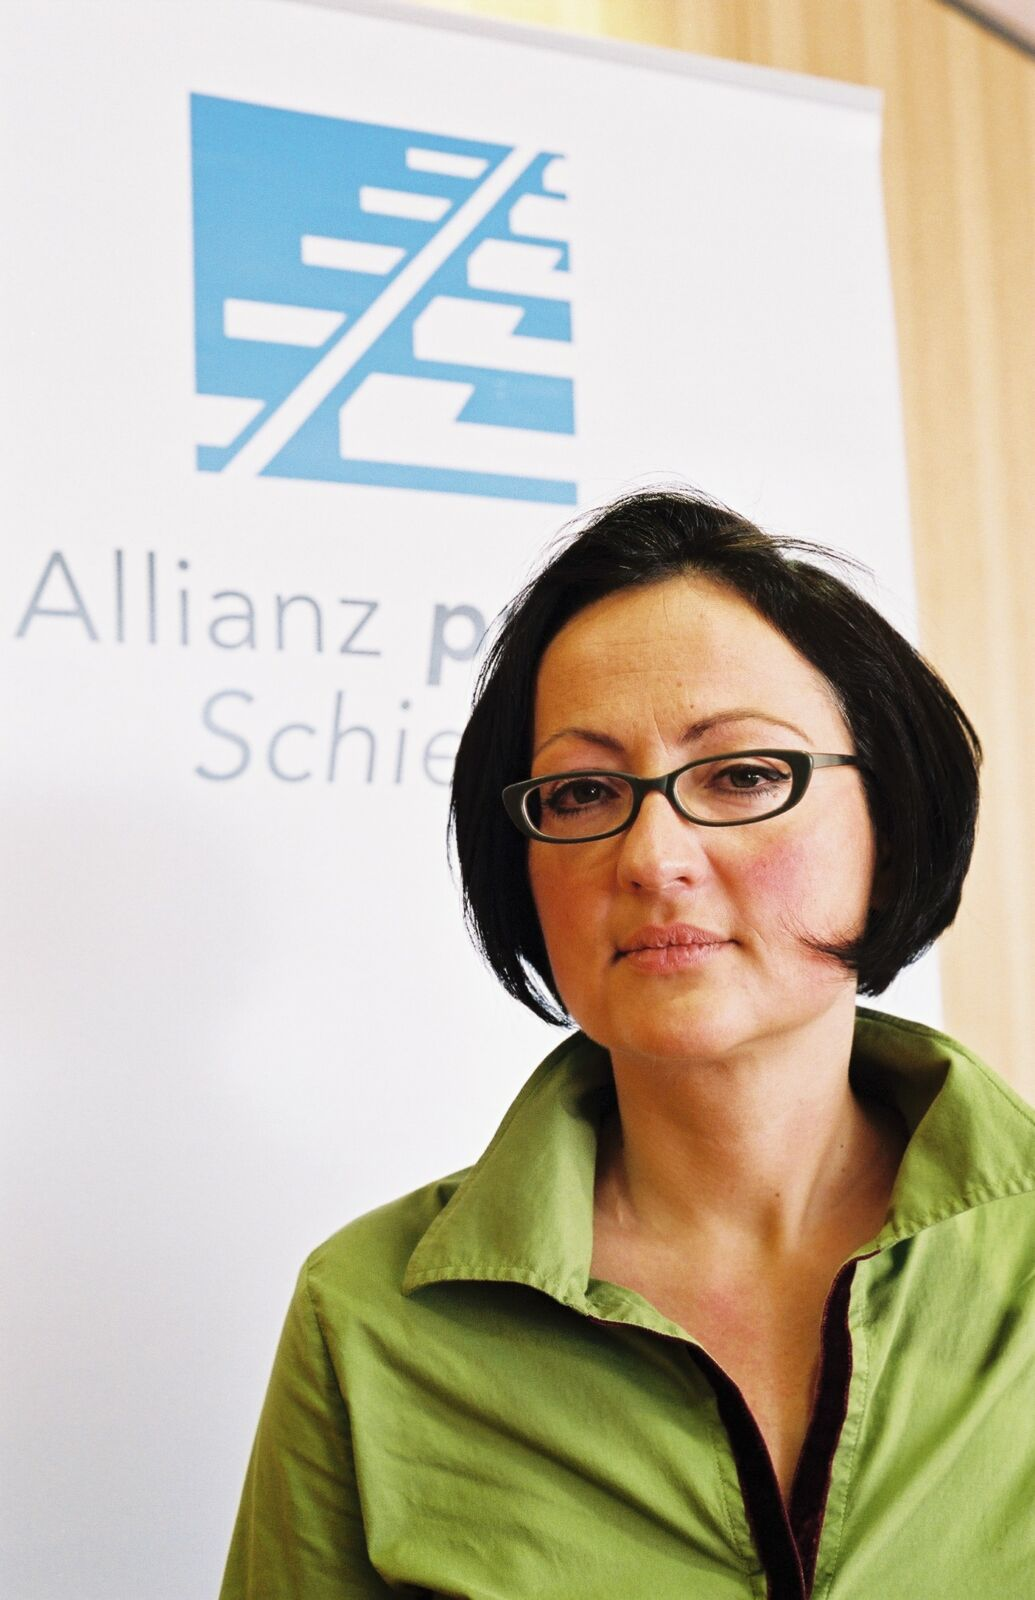 Frauke Lendowsky bei der Allianz pro Schiene